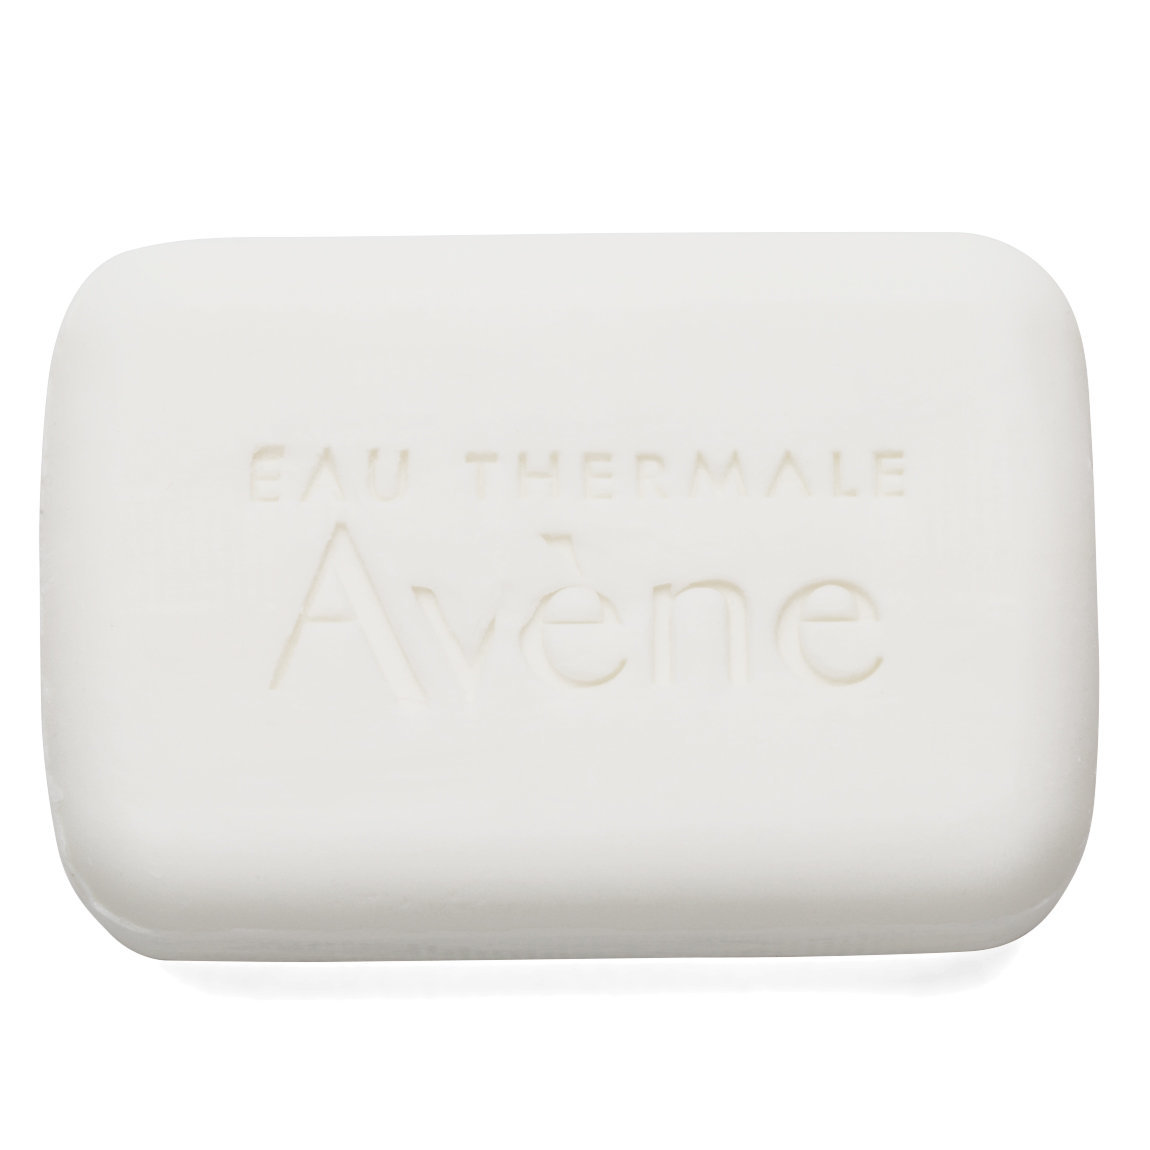 Eau Thermale Avène Cold Cream Ultra-Rich Cleansing Bar product swatch.